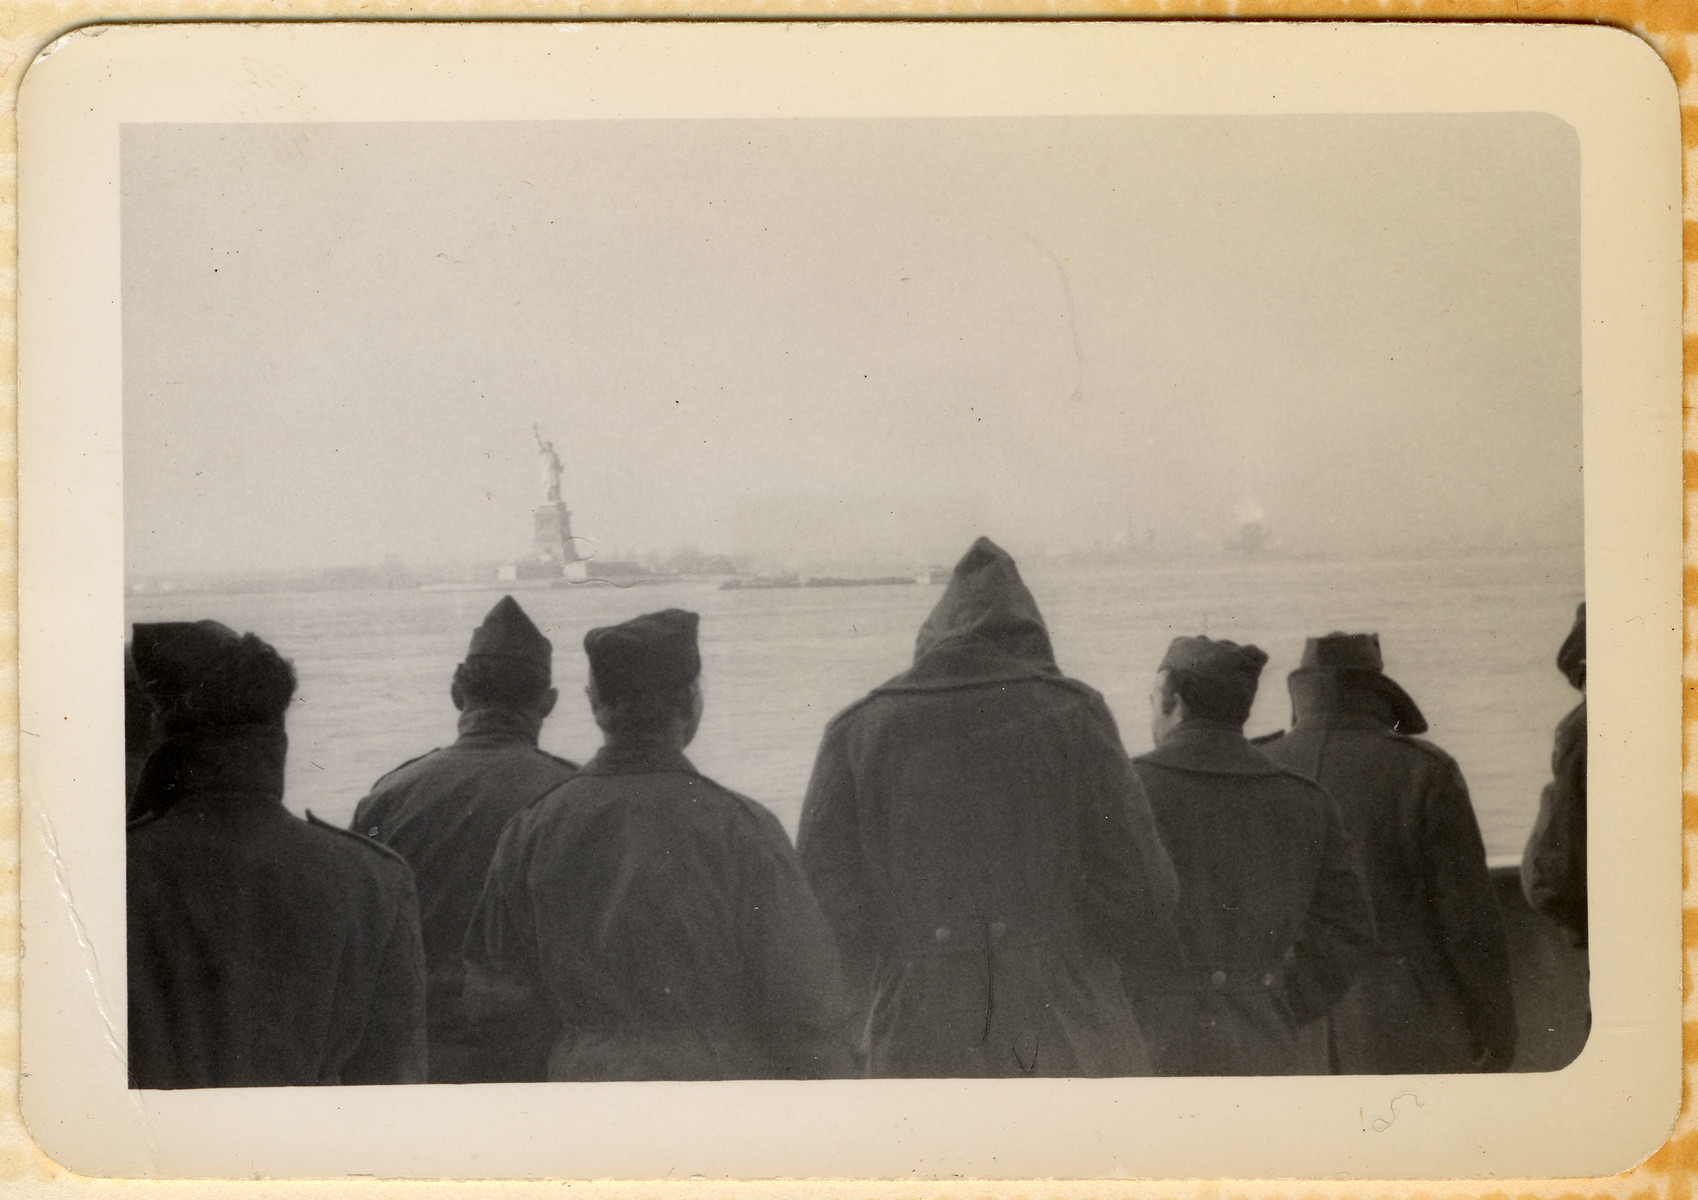 American GIs stand on the deck of their troop ship and look at the Statue of Liberty as they pull into NY harbor on their return home from World War II.